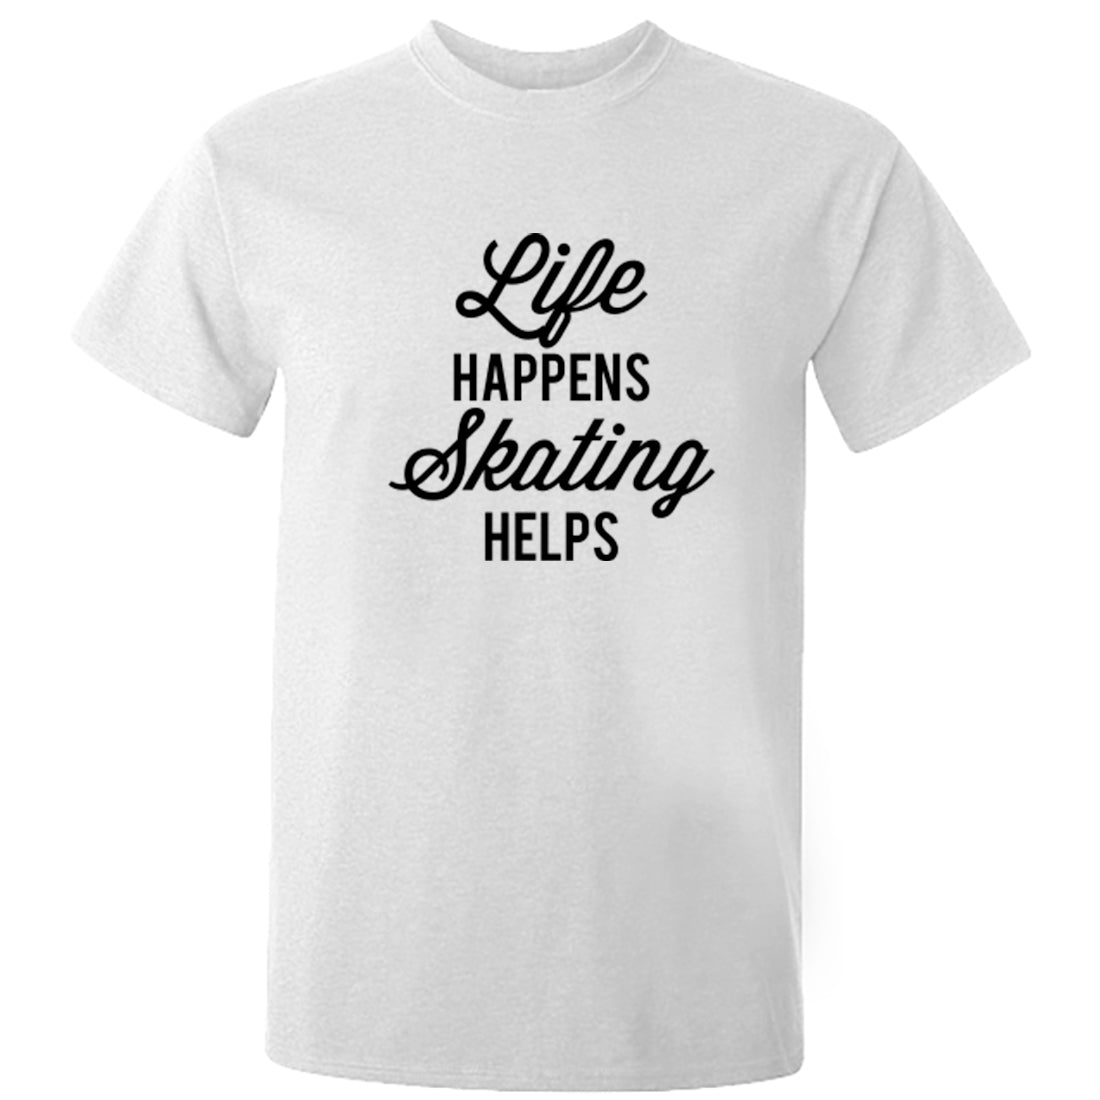 Life Happens Skating Helps Unisex Fit T-Shirt K2539 - Illustrated Identity Ltd.